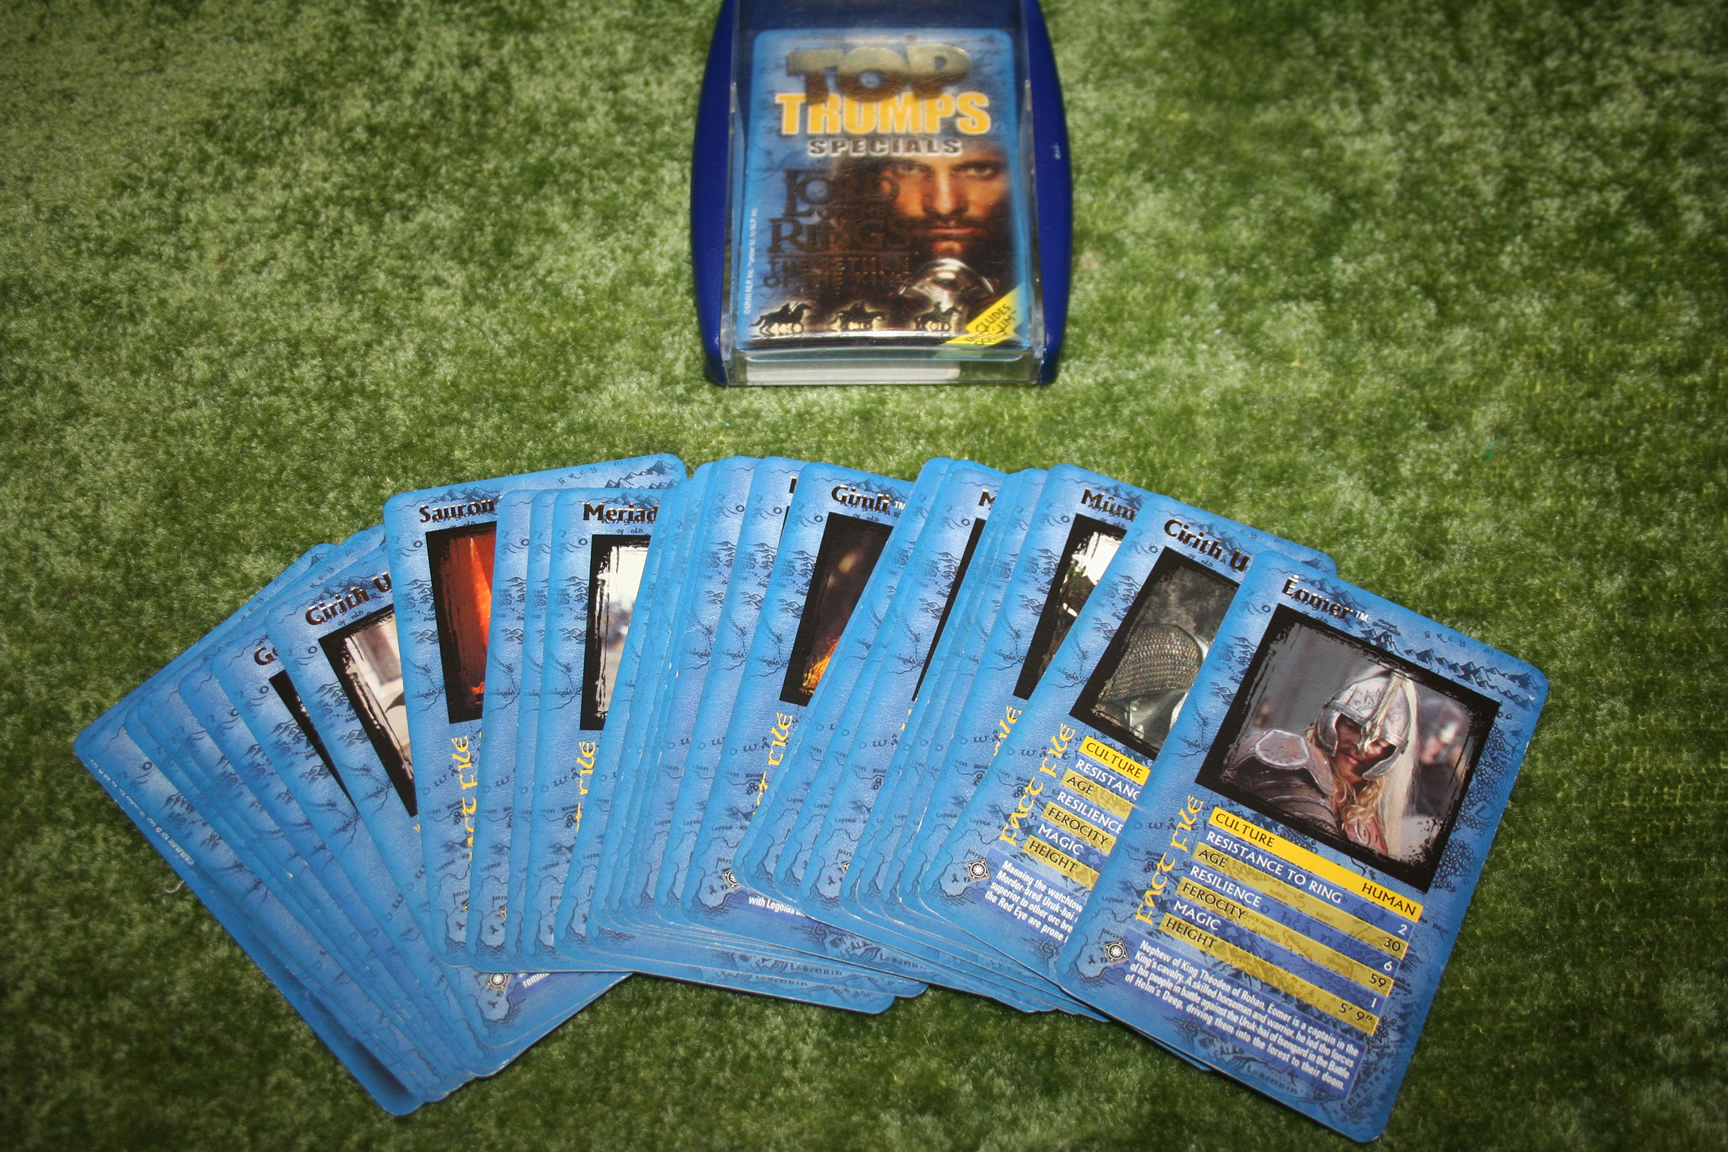 Lord of the Rings TopTrumps Cards.